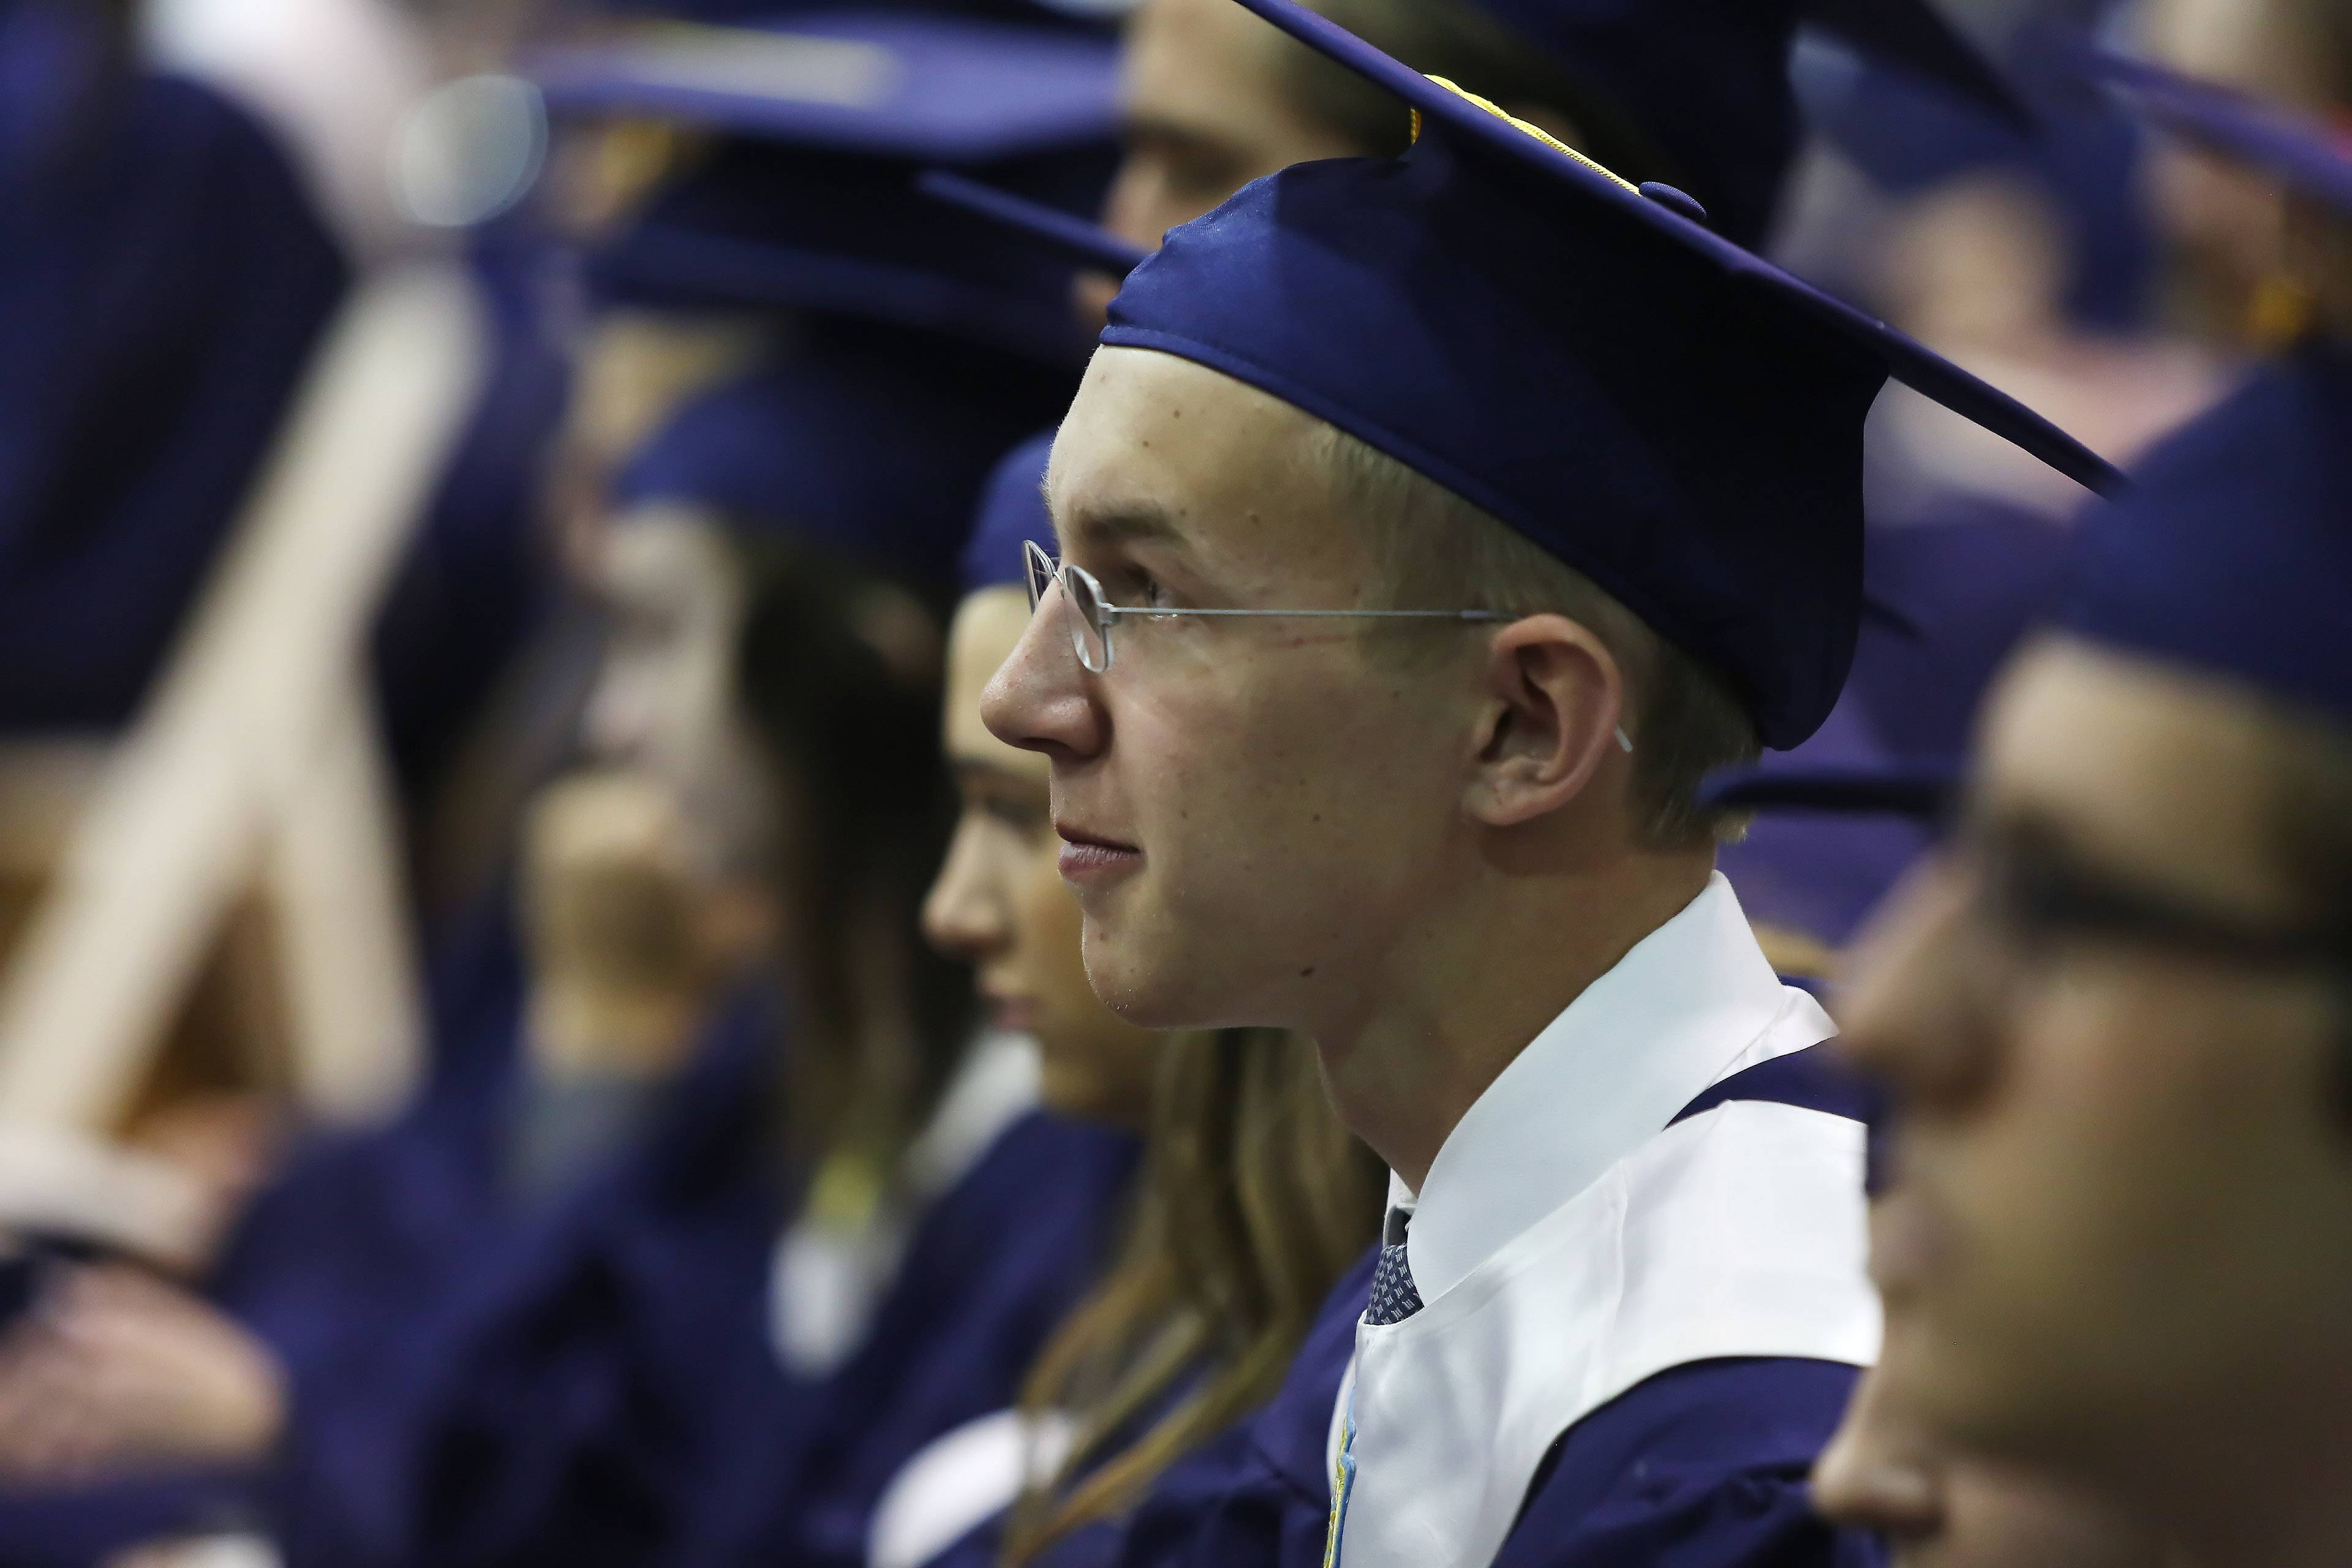 Images from the St. Viator High School graduation on Sunday, May 18th, in Arlington Heights.